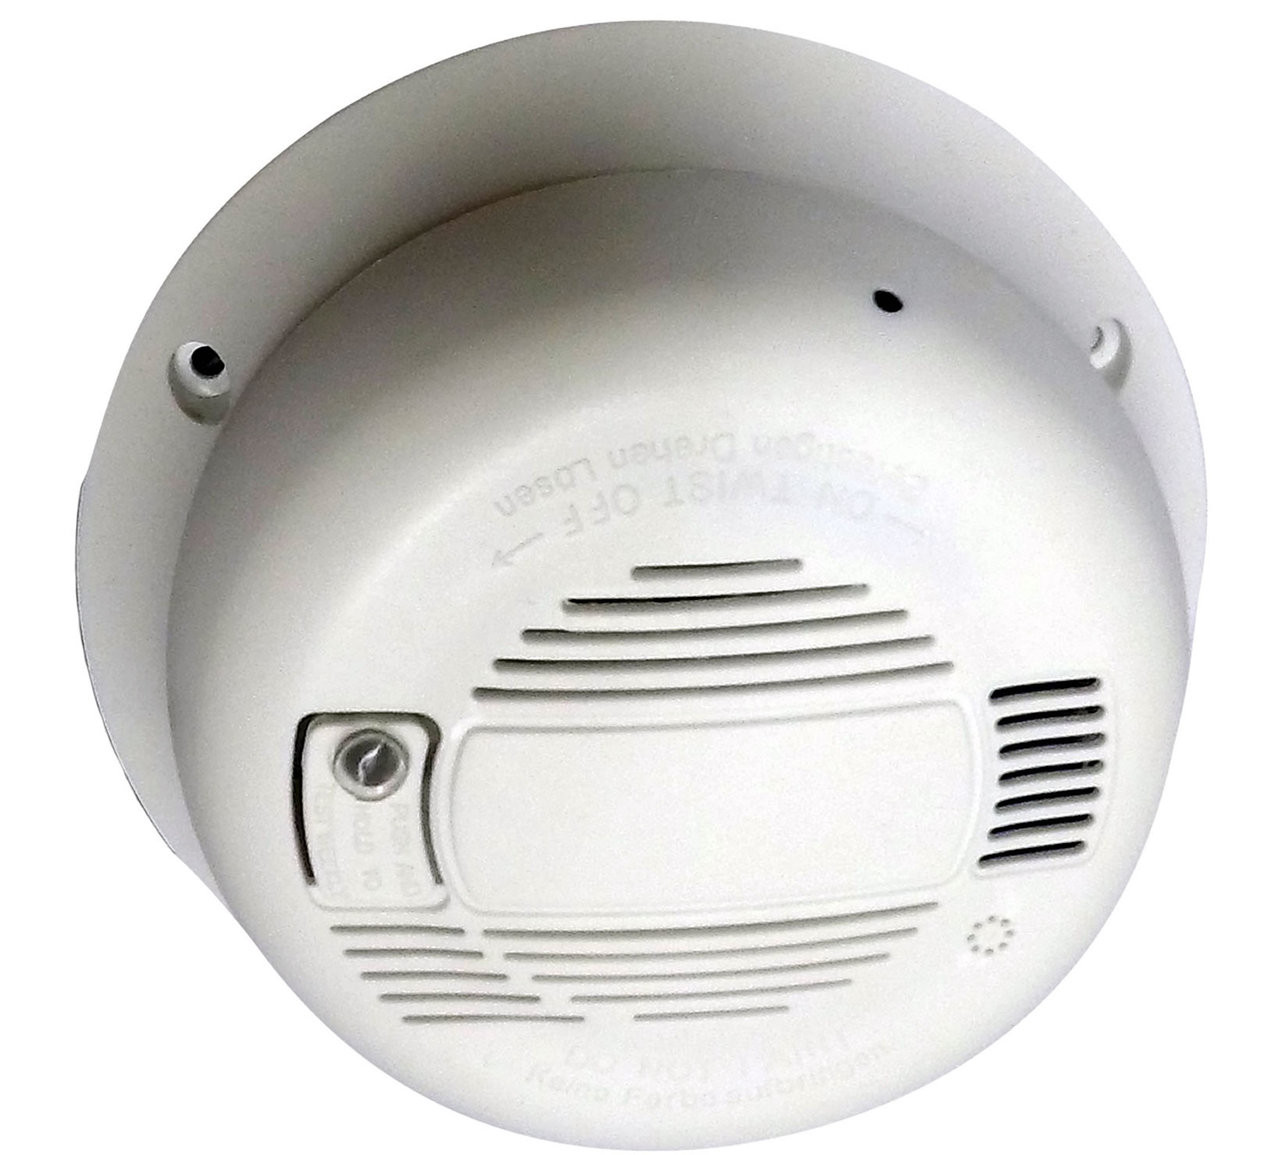 Smoke Detector Hidden Camera (Horizontal) w/ DVR & WiFi Internet Remote Live View Stunning HD Video Streaming Live On PC or Any Smart DeviceAll the video being recorded is in crisp & clear quality color video directly onto your PC computer using the free software in HD Video . This ensures youll be able to make out all the details of activity in the room youre recording. In addition, the camera lens shoots wide Field of View of 90 deg horizontal with a 3.8mm focal length so youll be able to see most of your room, edge to edge without missing a thing.  All the video is recorded in avi format using mpeg compression with time/date stamped files for easy saving, emailing or playback on your PC or Mac computer.Important: MAC COMPUTERS: Live viewing & recording is not Mac computer compatible. Live view works only when using the free app for iPhone or iPad.Record Weeks Of Video Onto A SD Card Or Your ComputerUsing an optional SD card, or your computer to stream to youll never run out of video memory. The choice is yours. This product streams & records directly to software running on your local PC computer  (sorry, no macs). You also have the option of using this to stream video only to any mobile device. With adjustable frame rate controls, its easy to capture weeks to  months of hidden videos. This, along with motion activated recording will give you virtually unlimited video recording time depending on your hard drive size in your computer. The easy to use software will allow you to view up to 32 different cameras from different locations on a single screen. Time/Date Stamp For Quick ID Provides Unquestionable Proof All of the video and recorded video files have time and date stamped directly onto the video. This provides clear-cut proof of exactly when the event occurred. Easy-To-Use Settings For Up To 32 Remote CamerasNothing complicated here. The hidden camera is ready-to-go out of the box. All you need is to have access to high speed internet via your wireless router